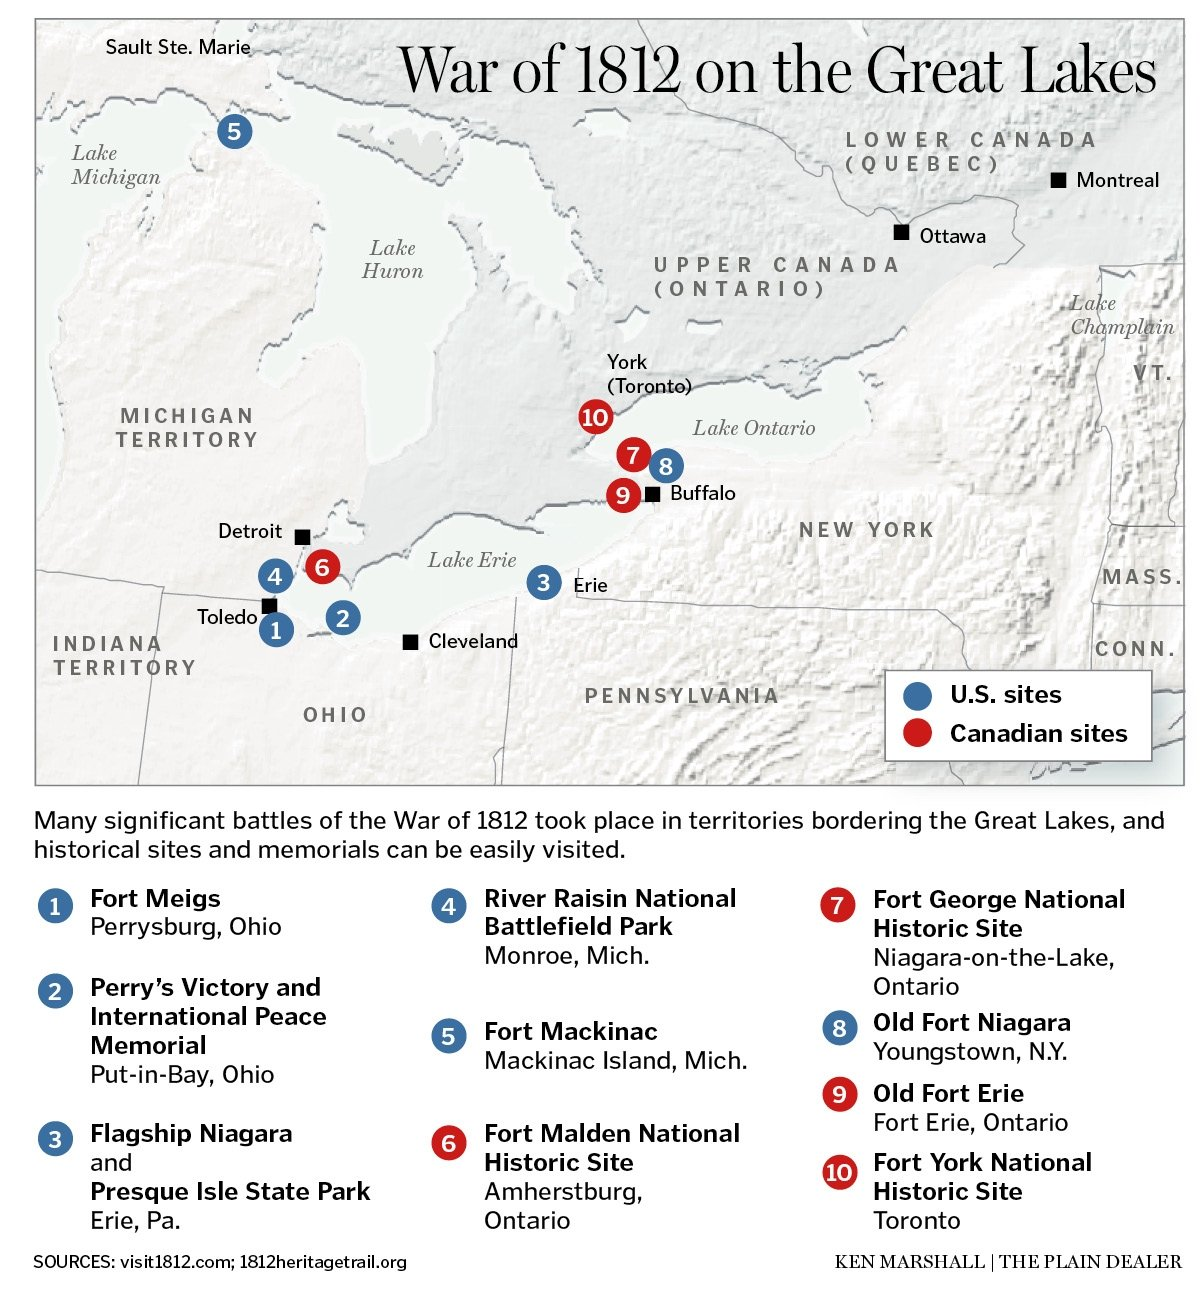 The Great Lakes region played a key role in the War of